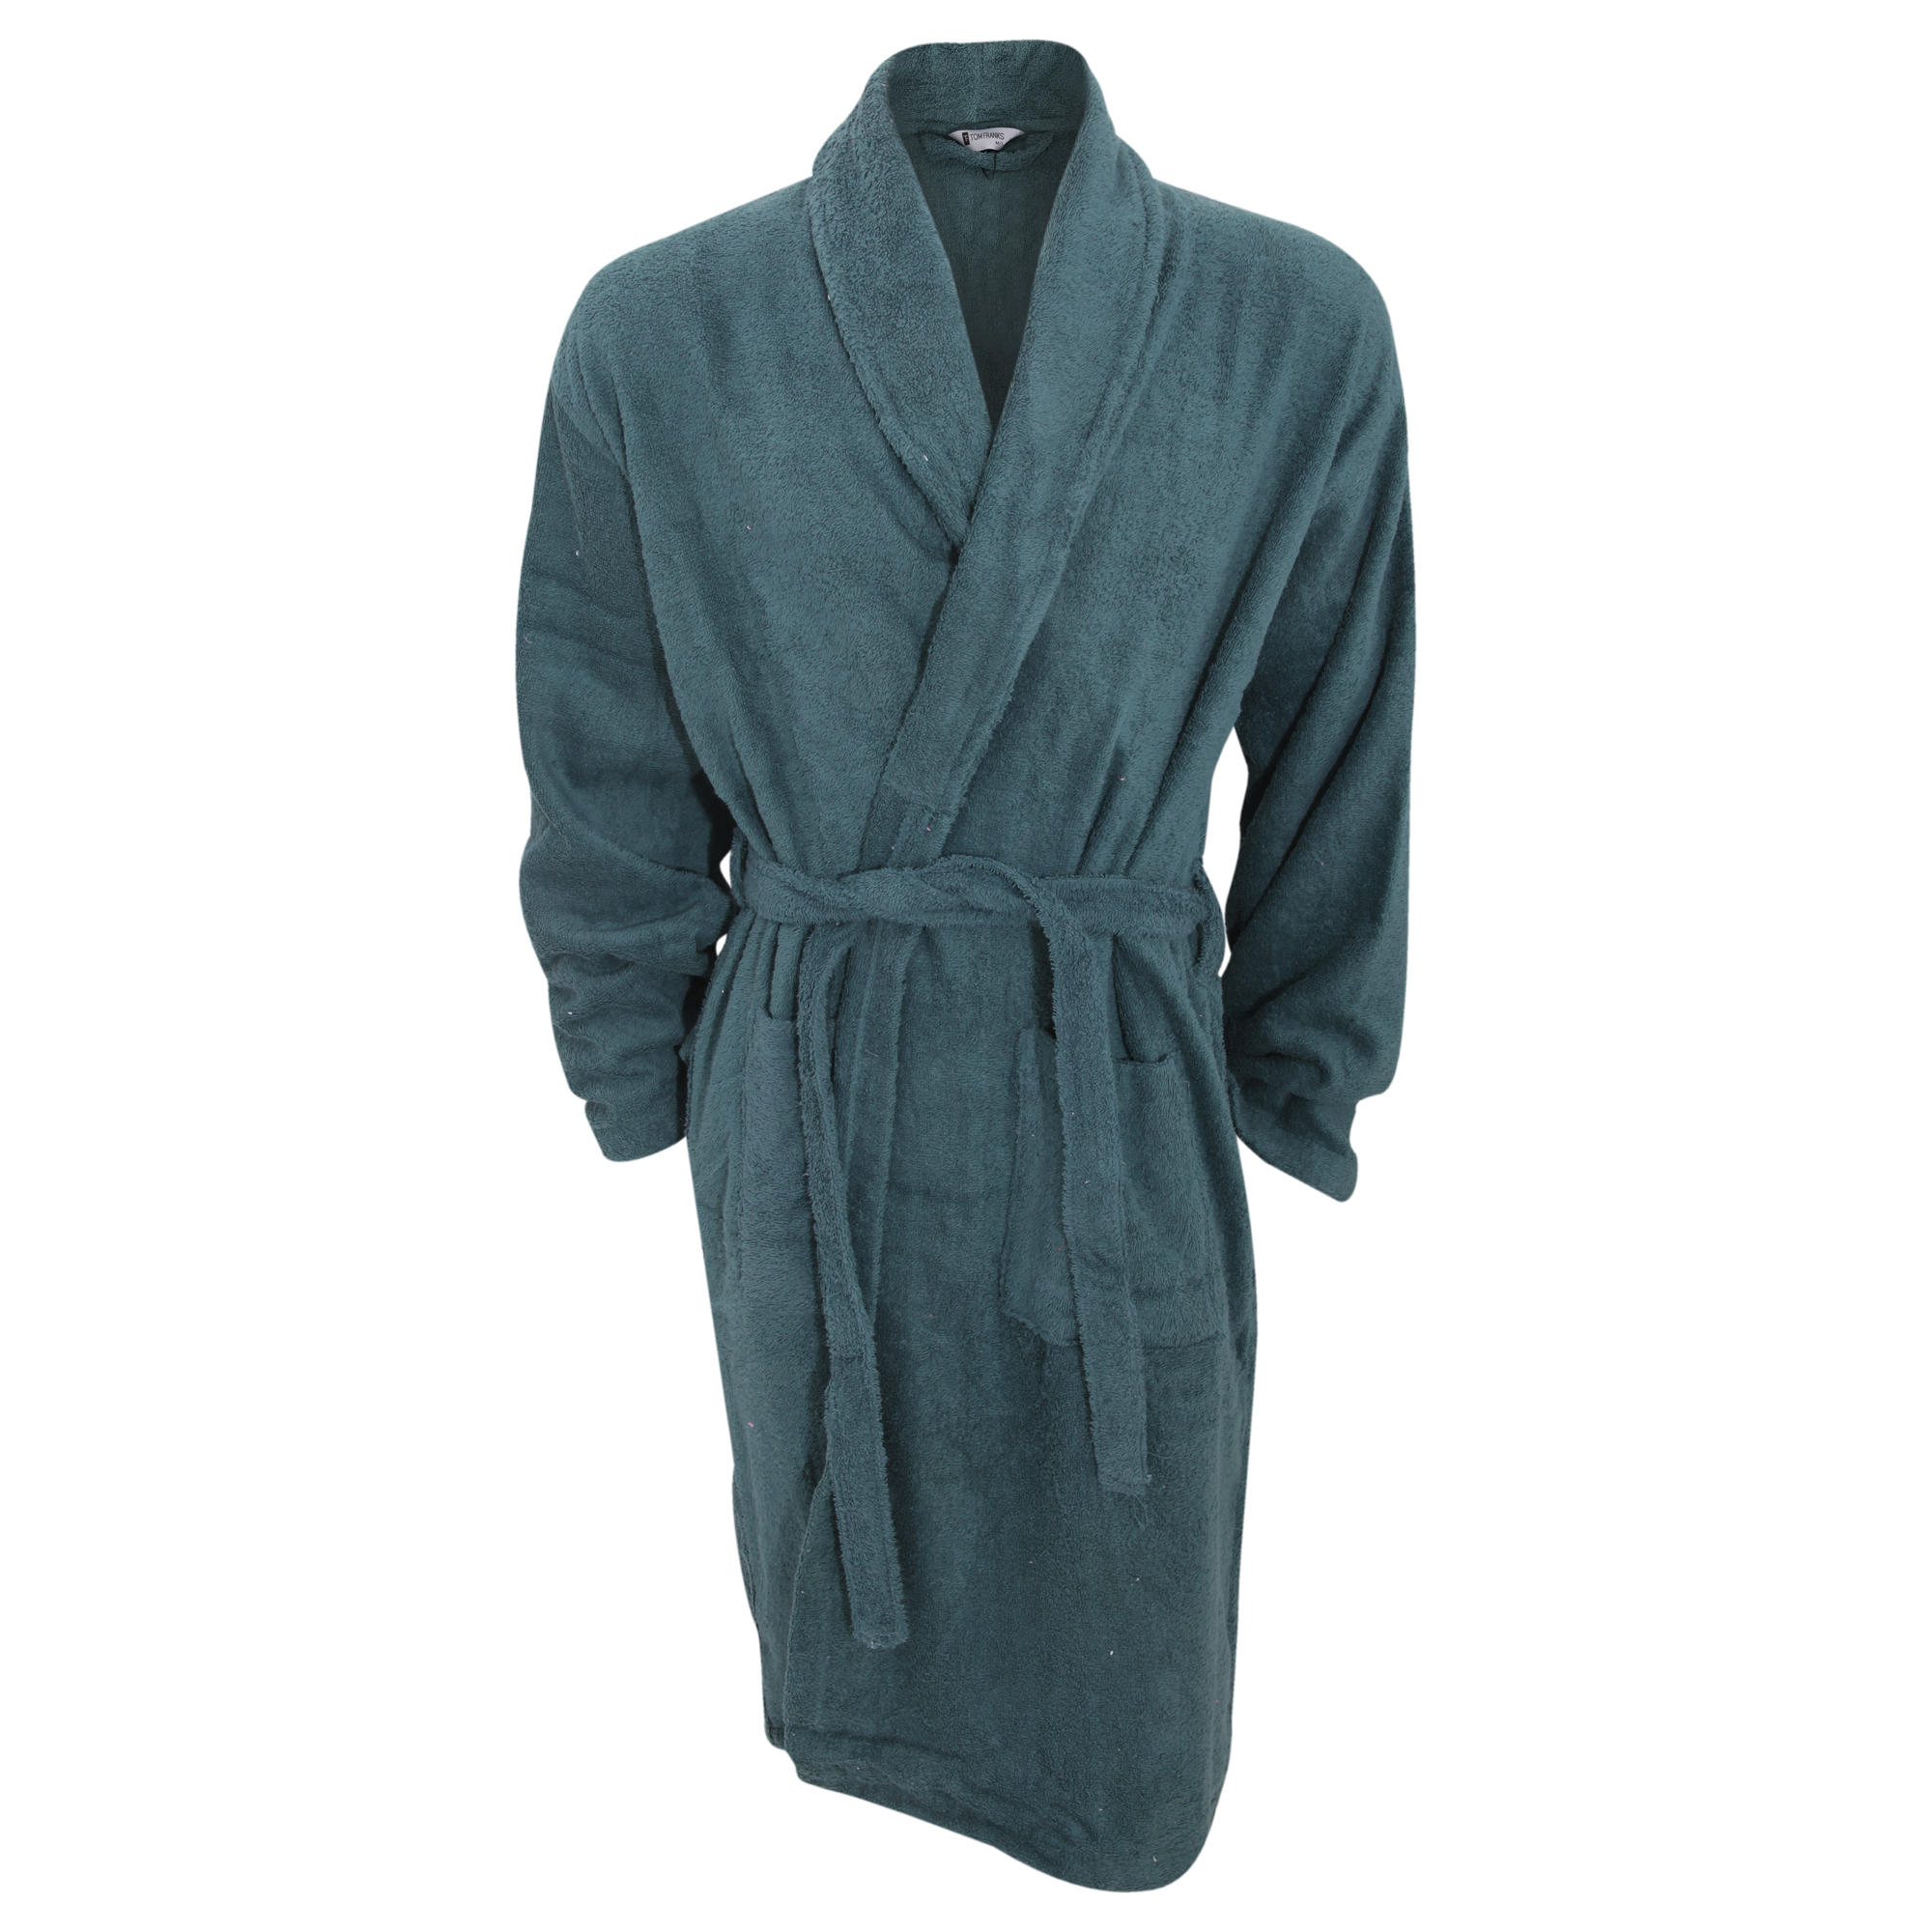 Cotton On Dressing Gown Mens Plain Cotton Towelling Robe Dressing Gown Ebay